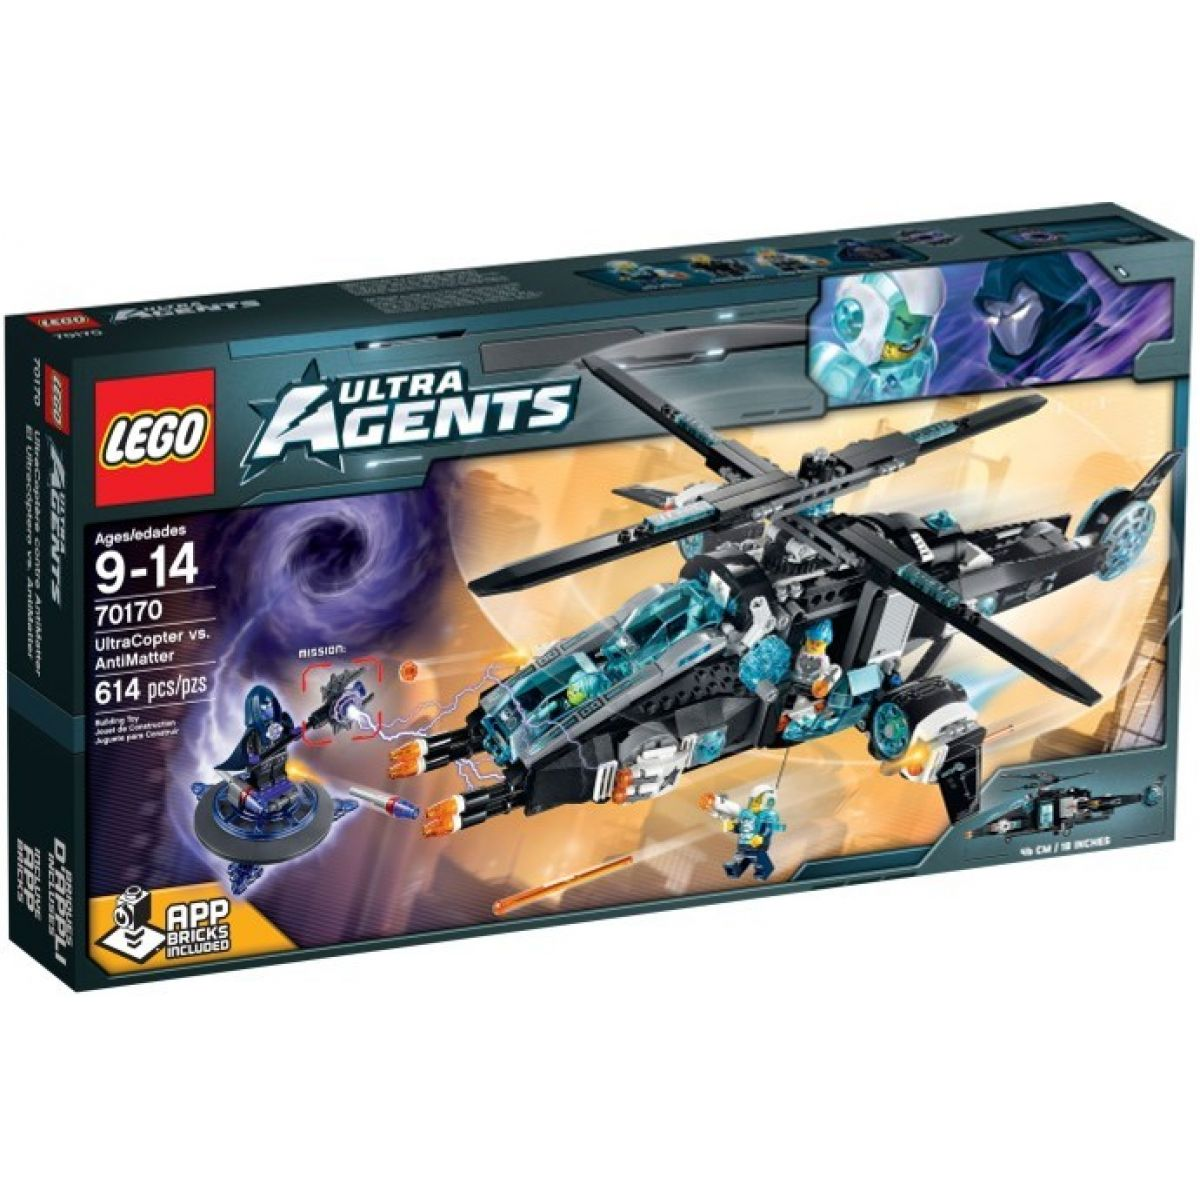 LEGO Agents 70170 - UltraCopter vs. AntiMatter